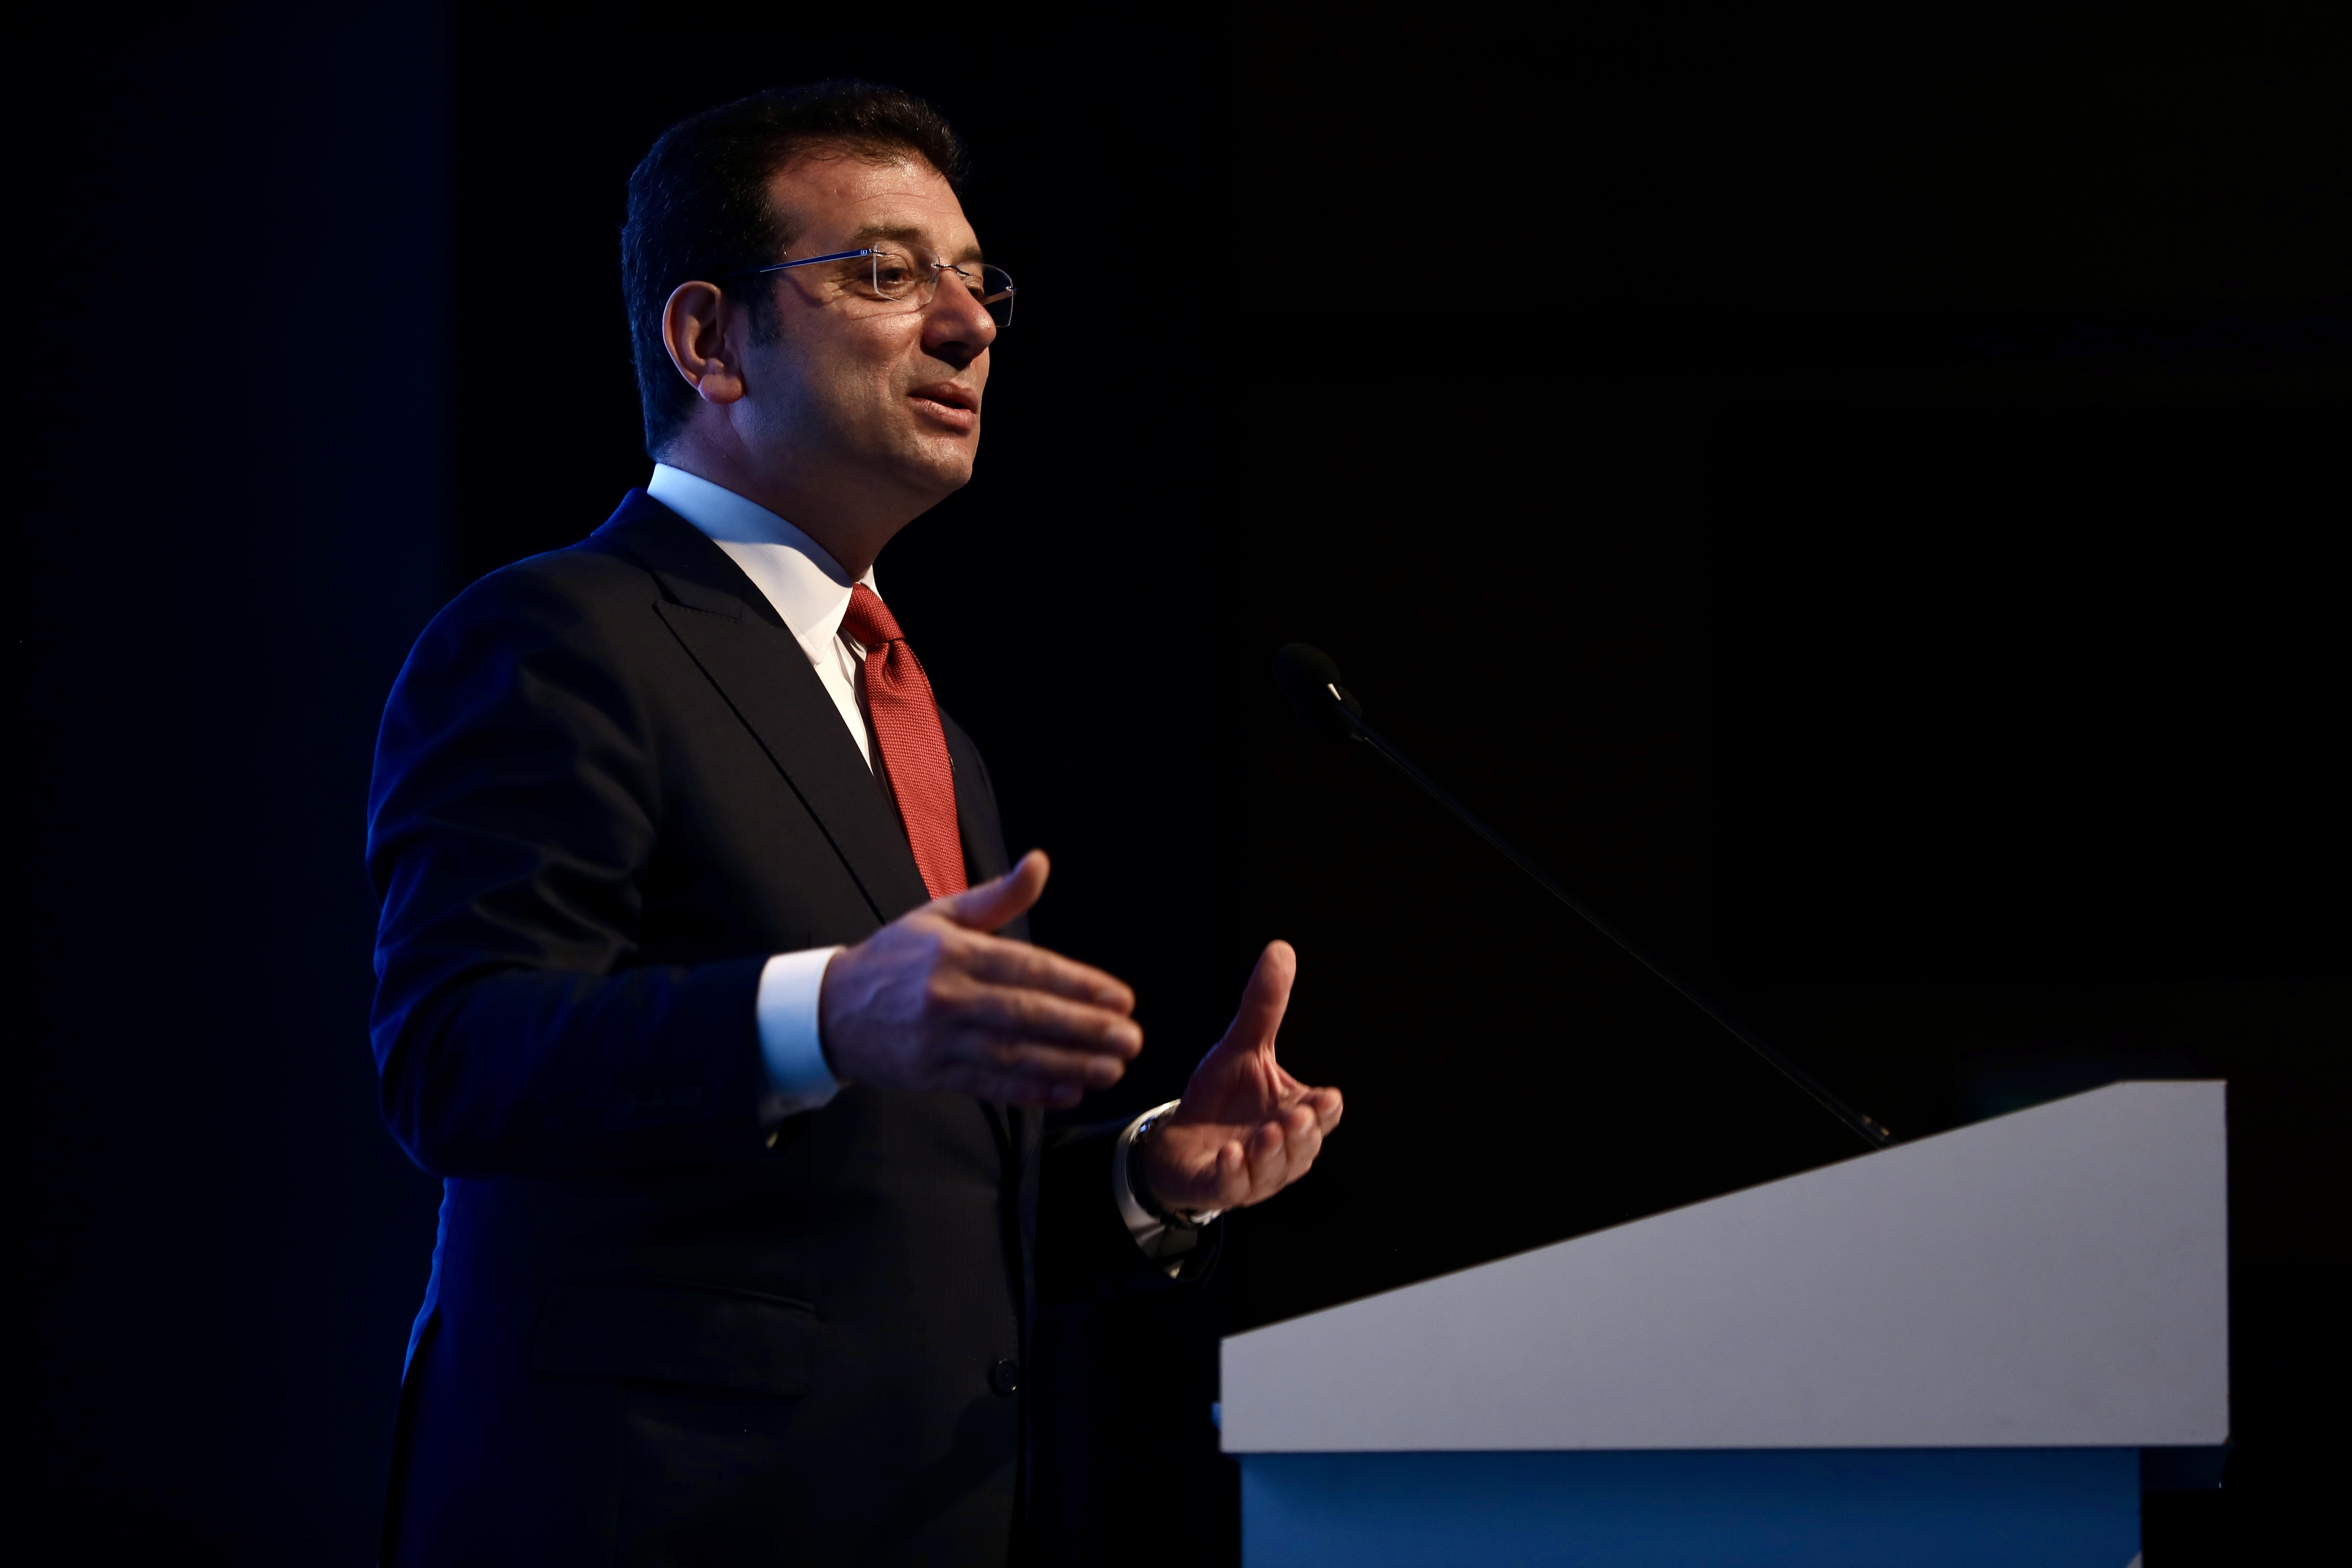 Ekrem Imamoğlu, mayor of Istanbul, speaks at the opening ceremony of an agency in Istanbul, Turkey. (Reuters File Photo)